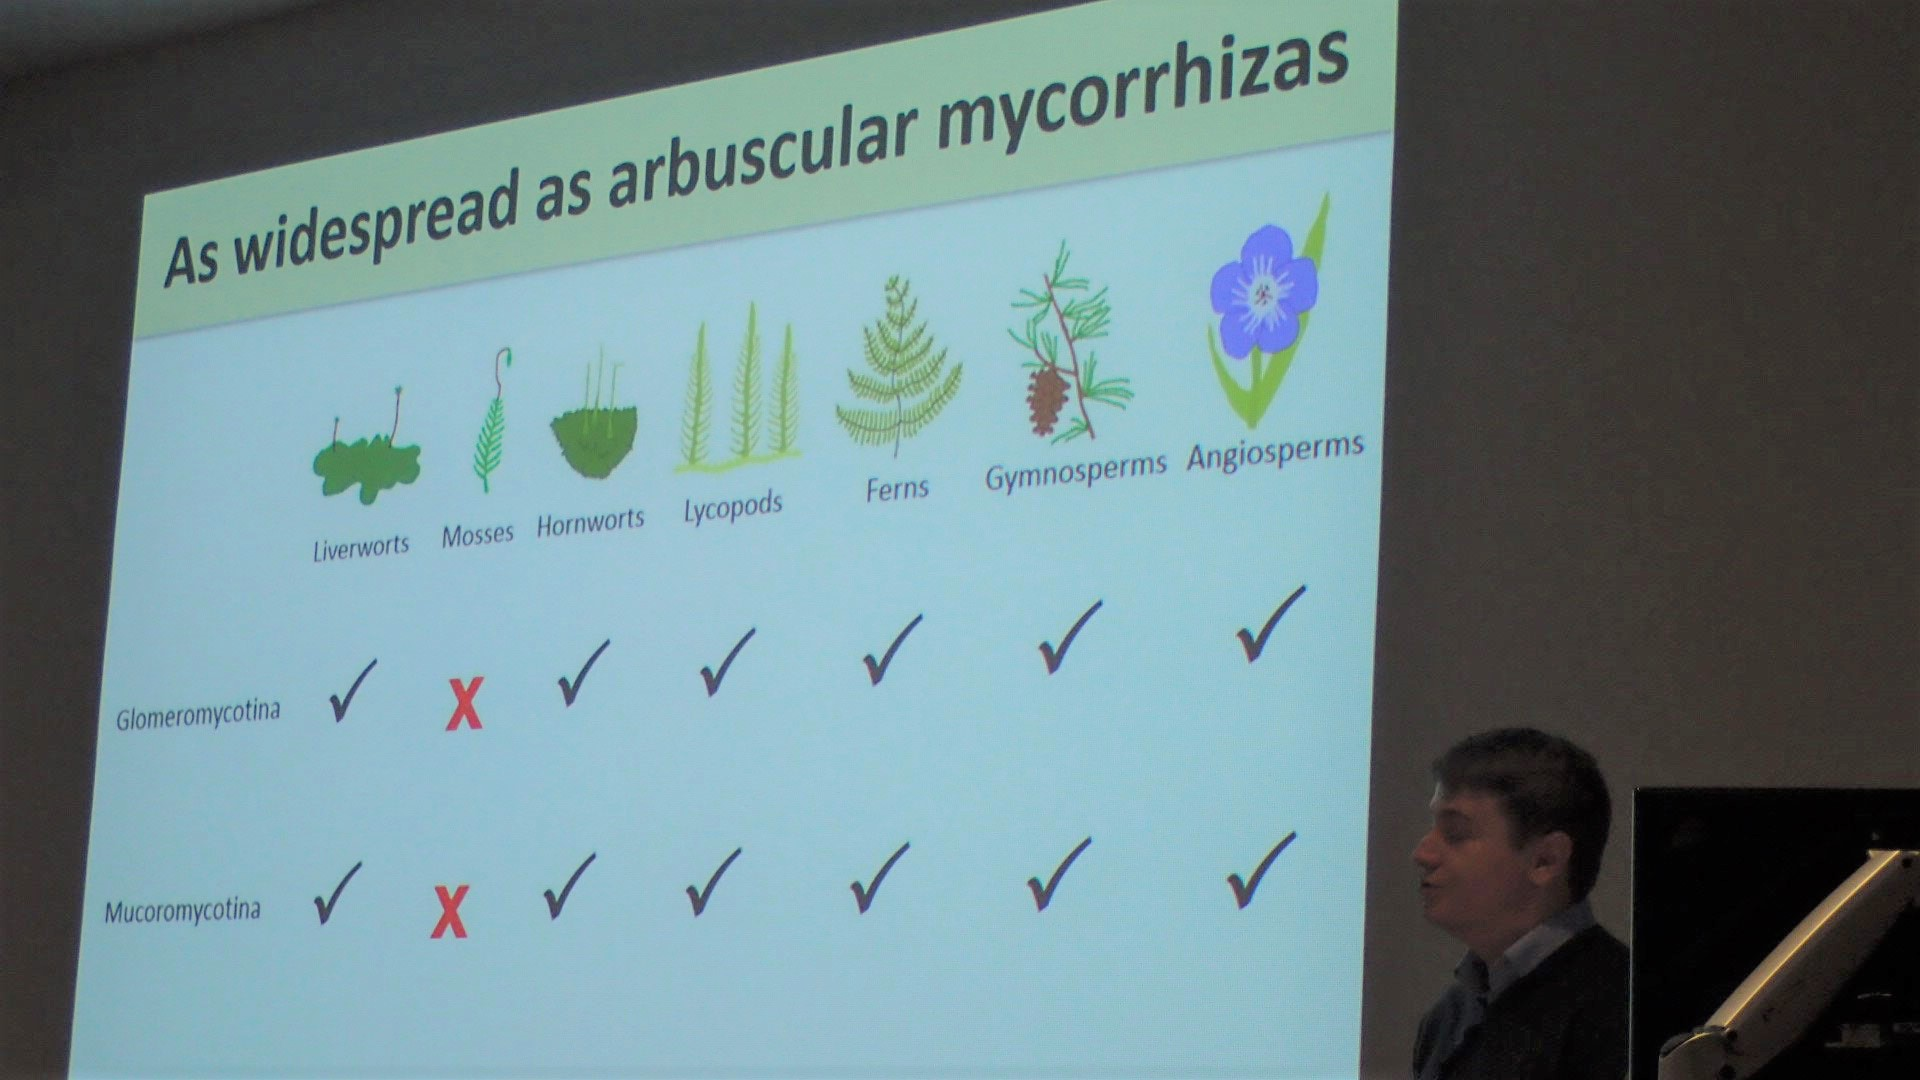 Dr. Brian Pickles (University of Reading, UK) highlighted the different influences of climate change on mycorrhizal fungi (which help plants to thrive).